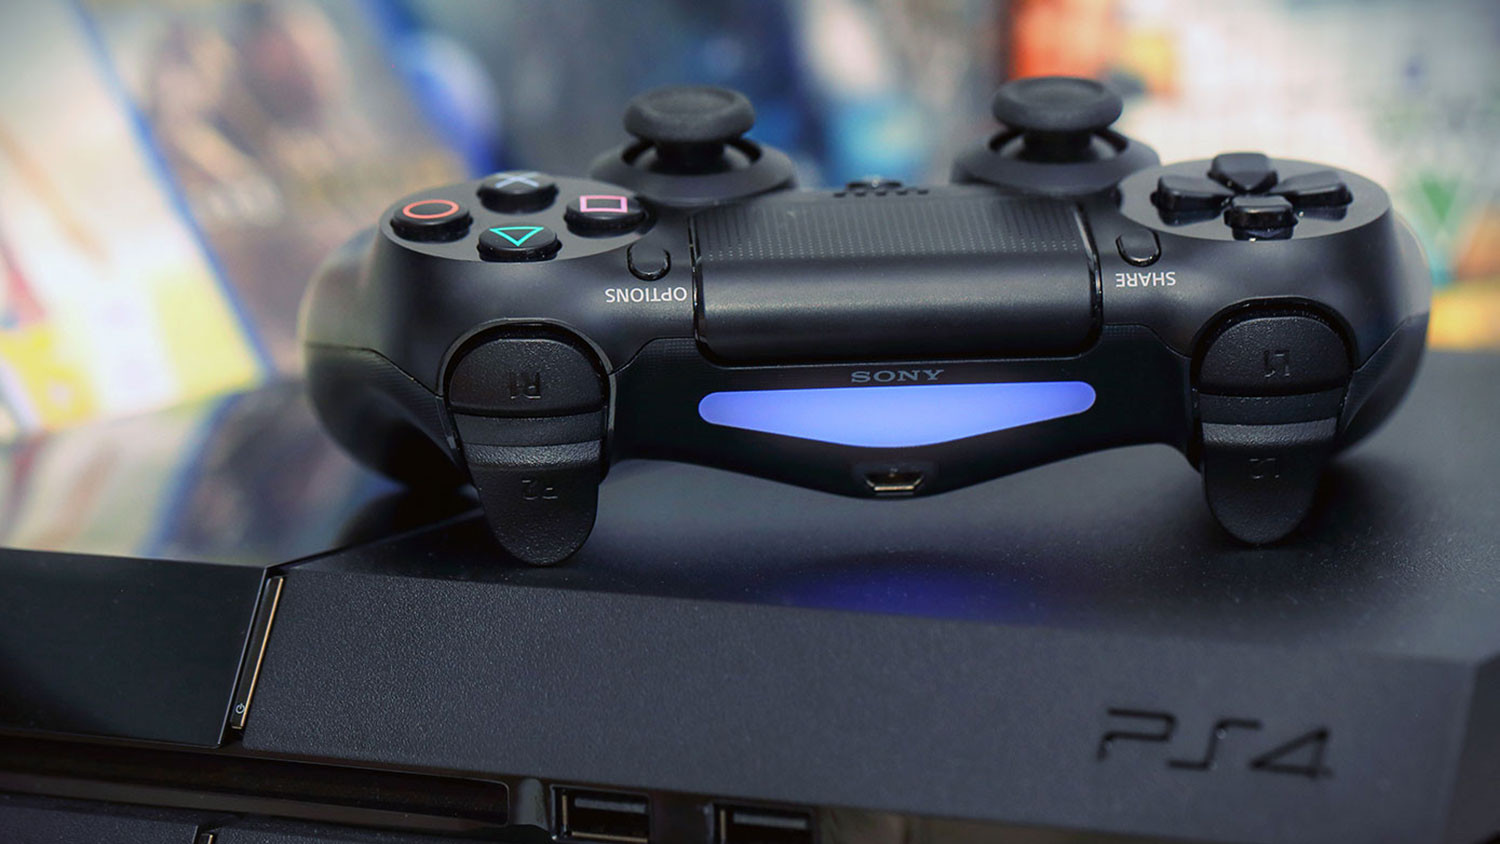 Leak suggests the PlayStation 4 Slim will introduce an updated controller, too